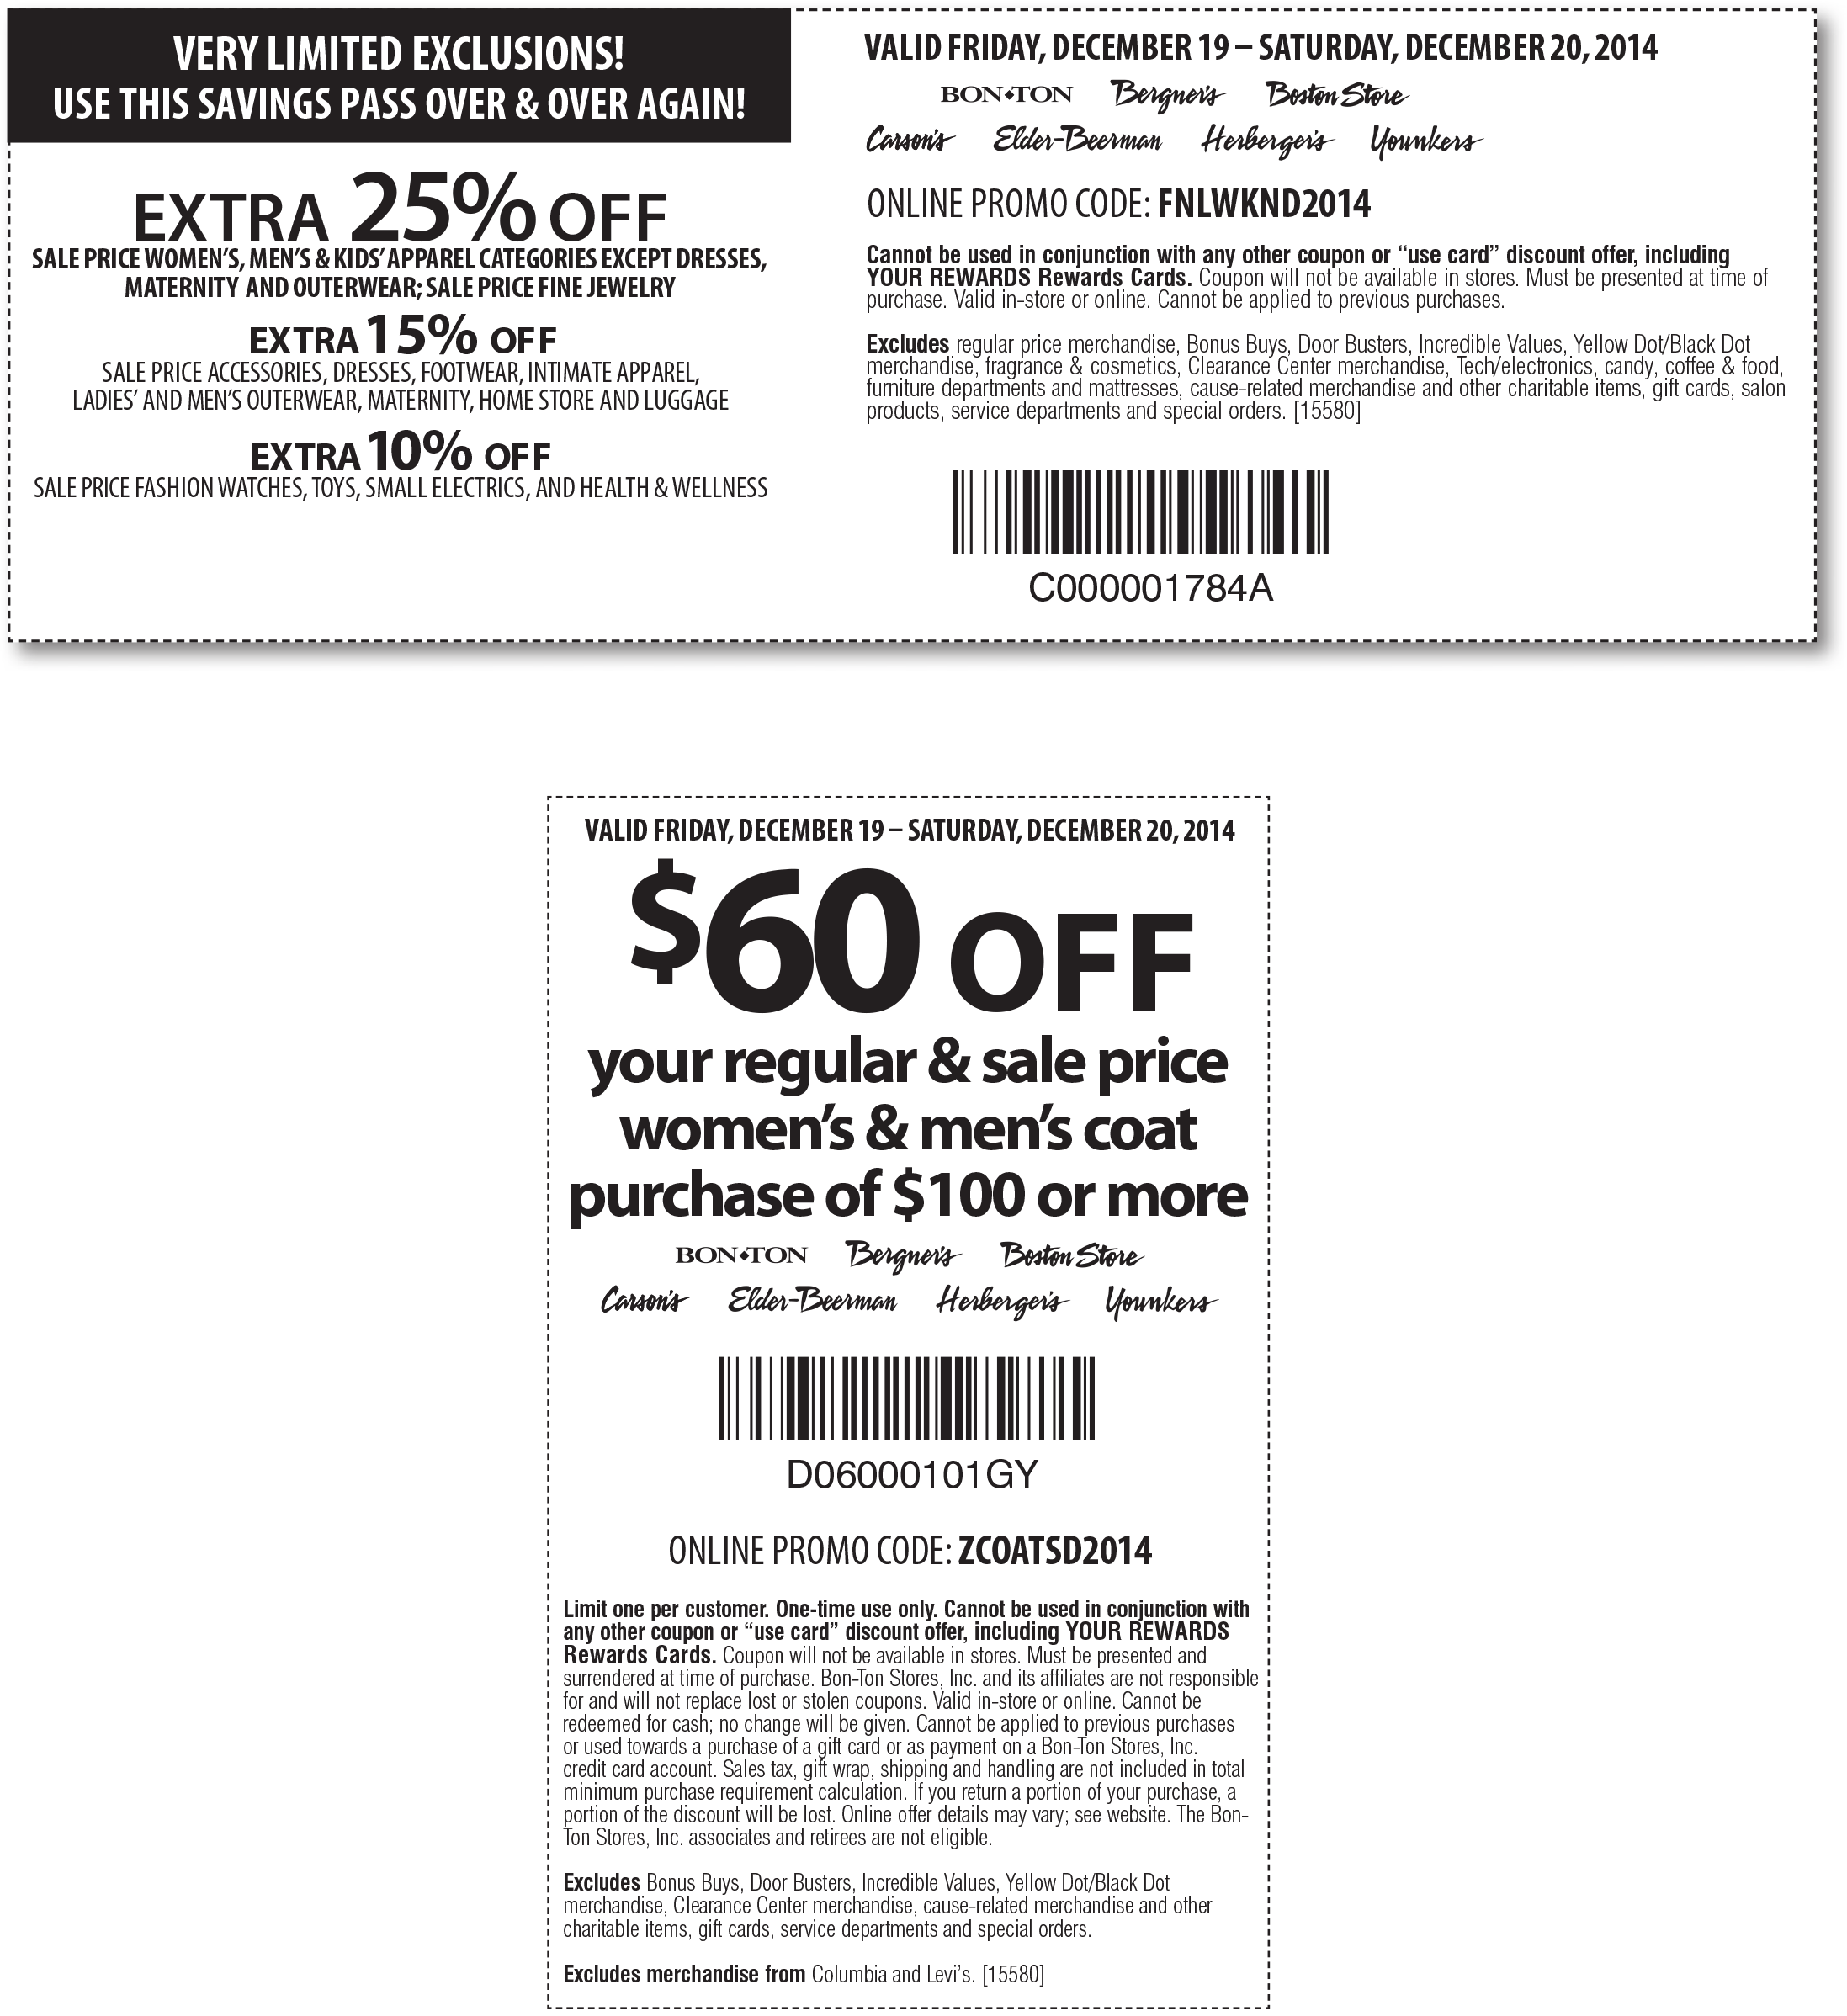 Carsons Coupon December 2016 Extra 25% off sale apparel today at Carsons, Bon Ton & sister stores, or online via promo code FNLWKND2014